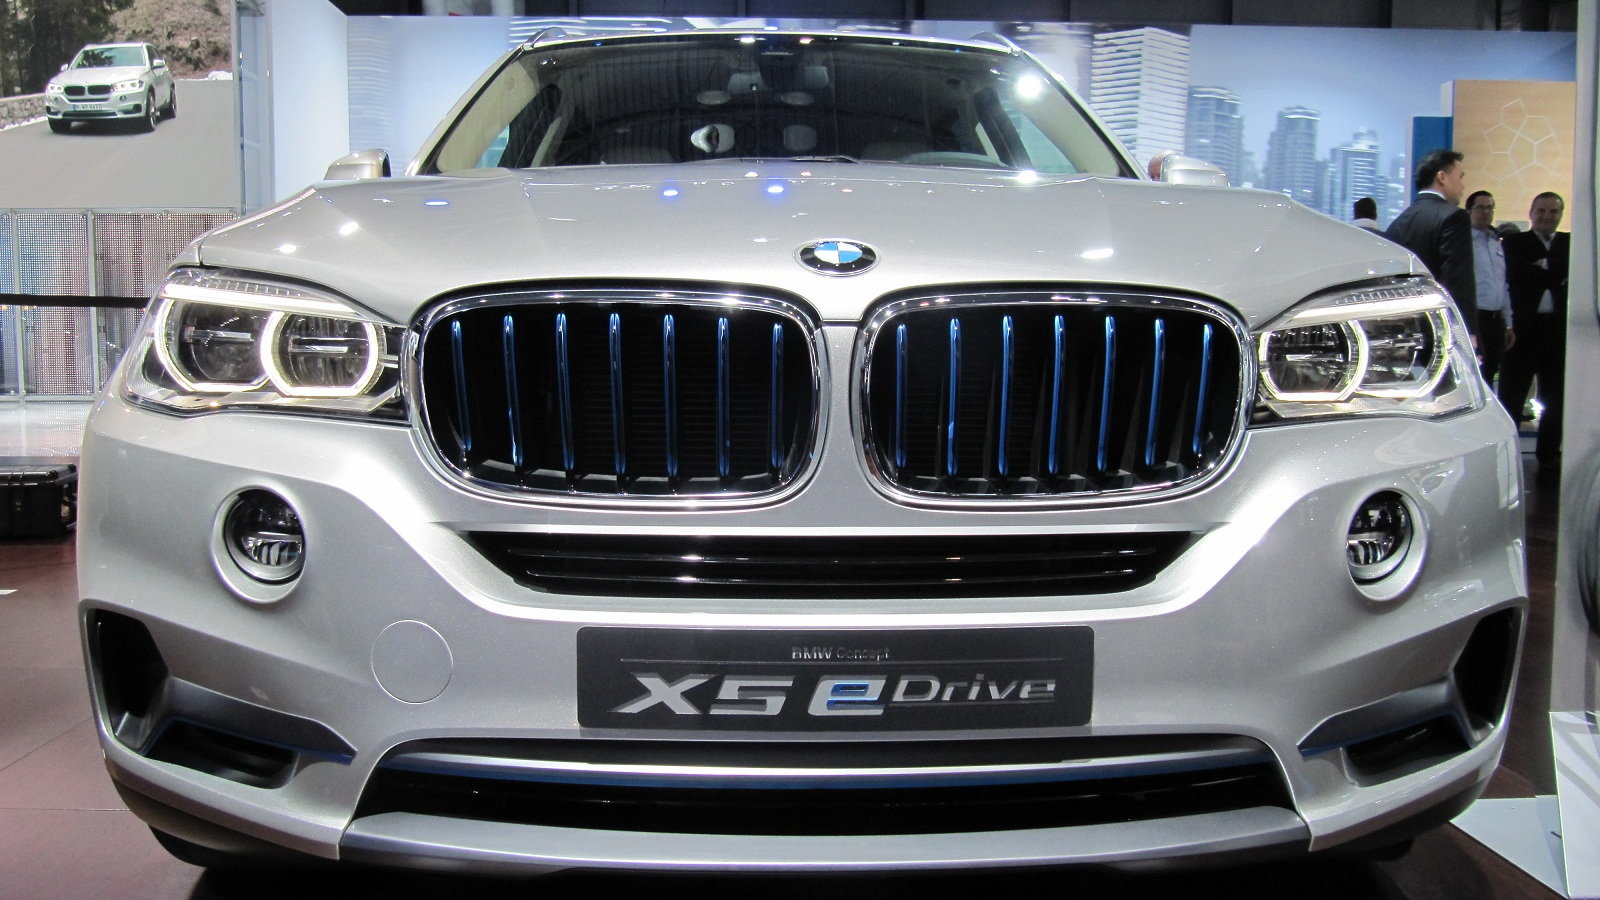 BMW Concept X5 eDrive at 2014 New York Auto Show